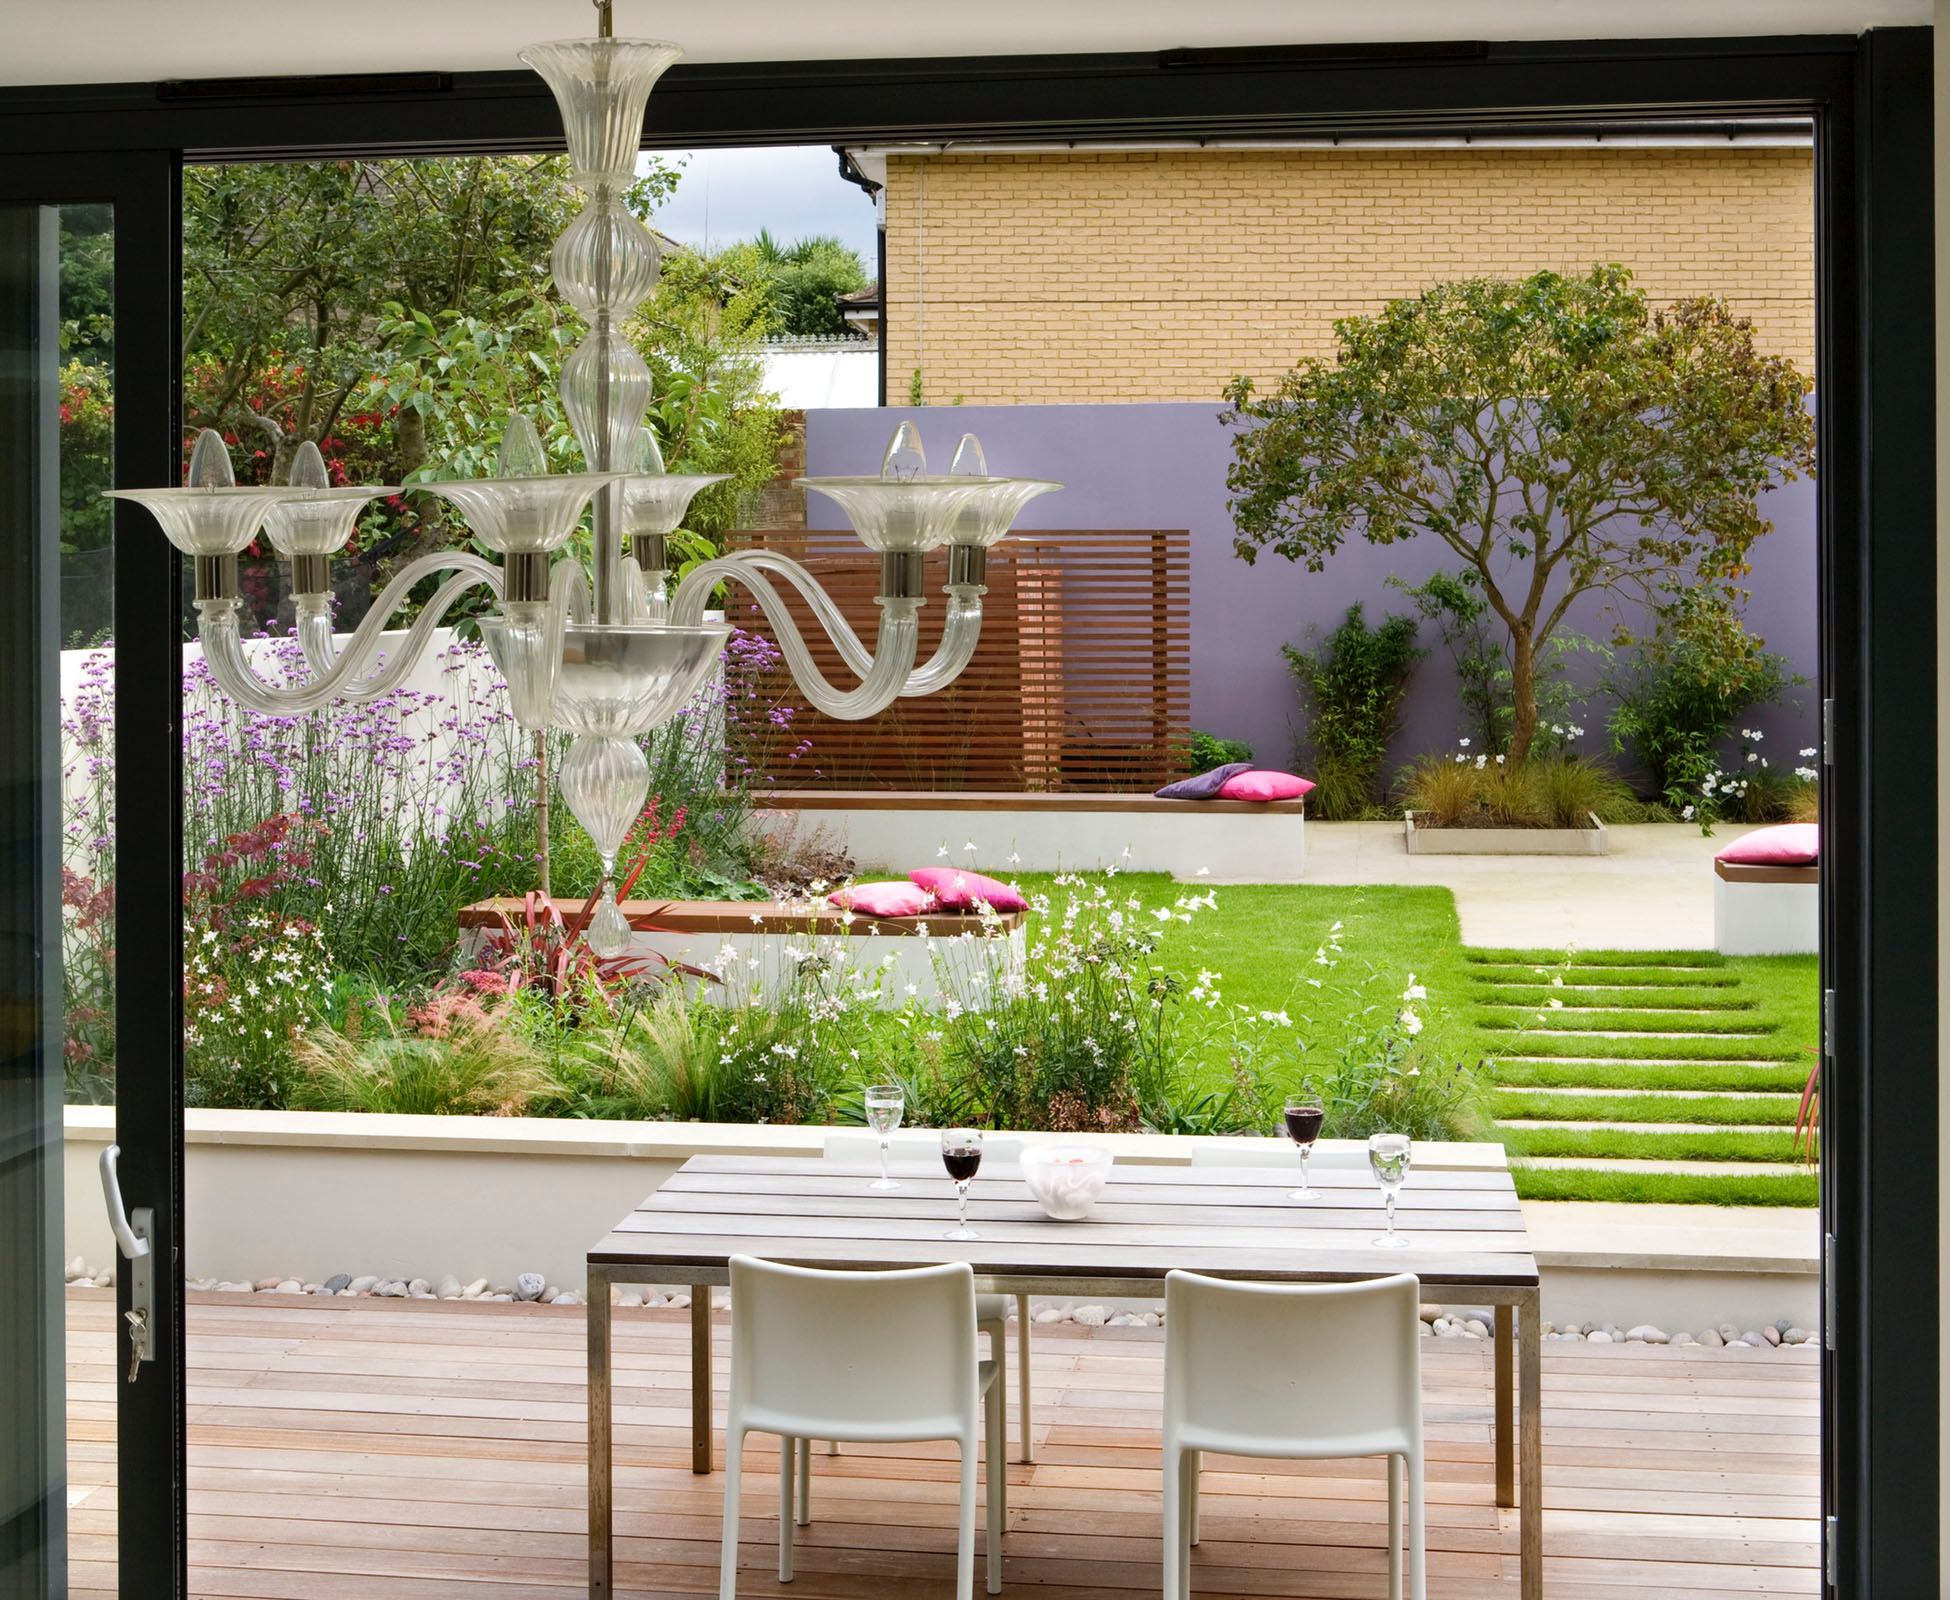 The view out onto this contemporary garden, shows the clean, lines of the geometric design.